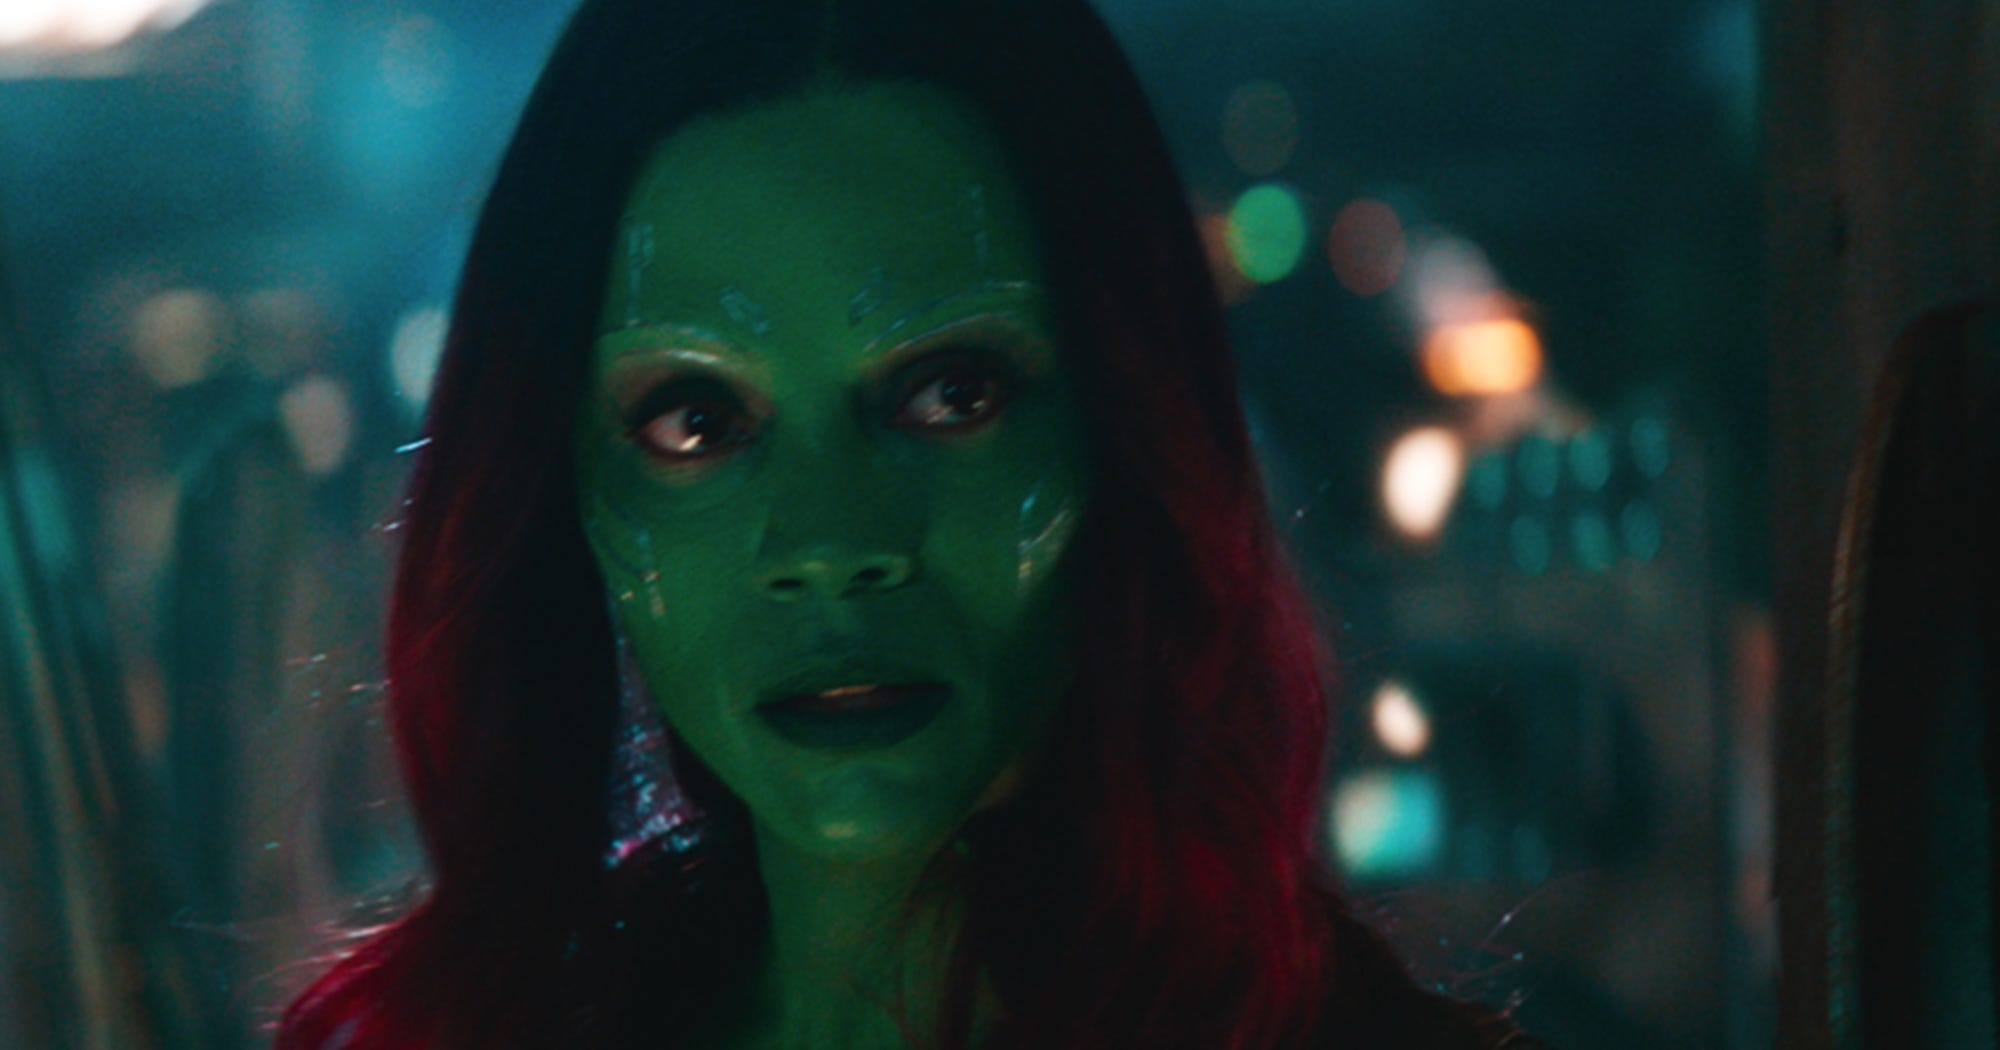 Where Is Gamora After Avengers Endgame, What Happened?